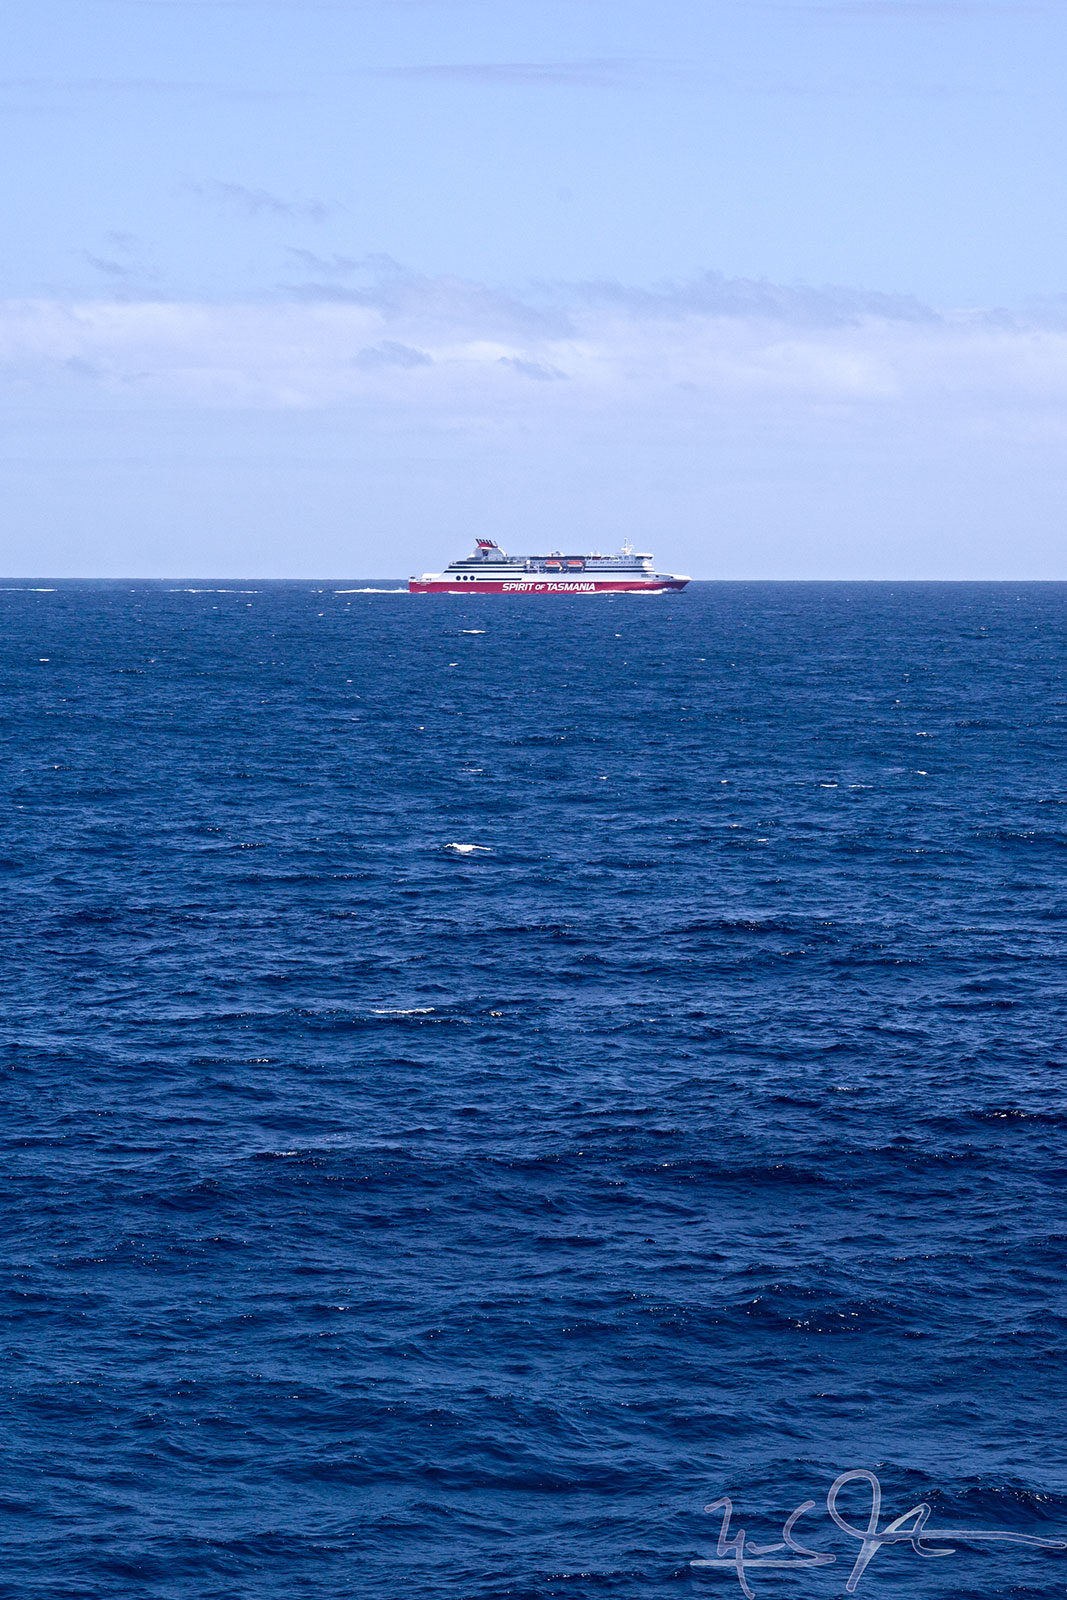 """Spirit of Tasmania I"" inbound to Melbourne from Devonport passes by us about an hour and a half after we enter Bass Strait."